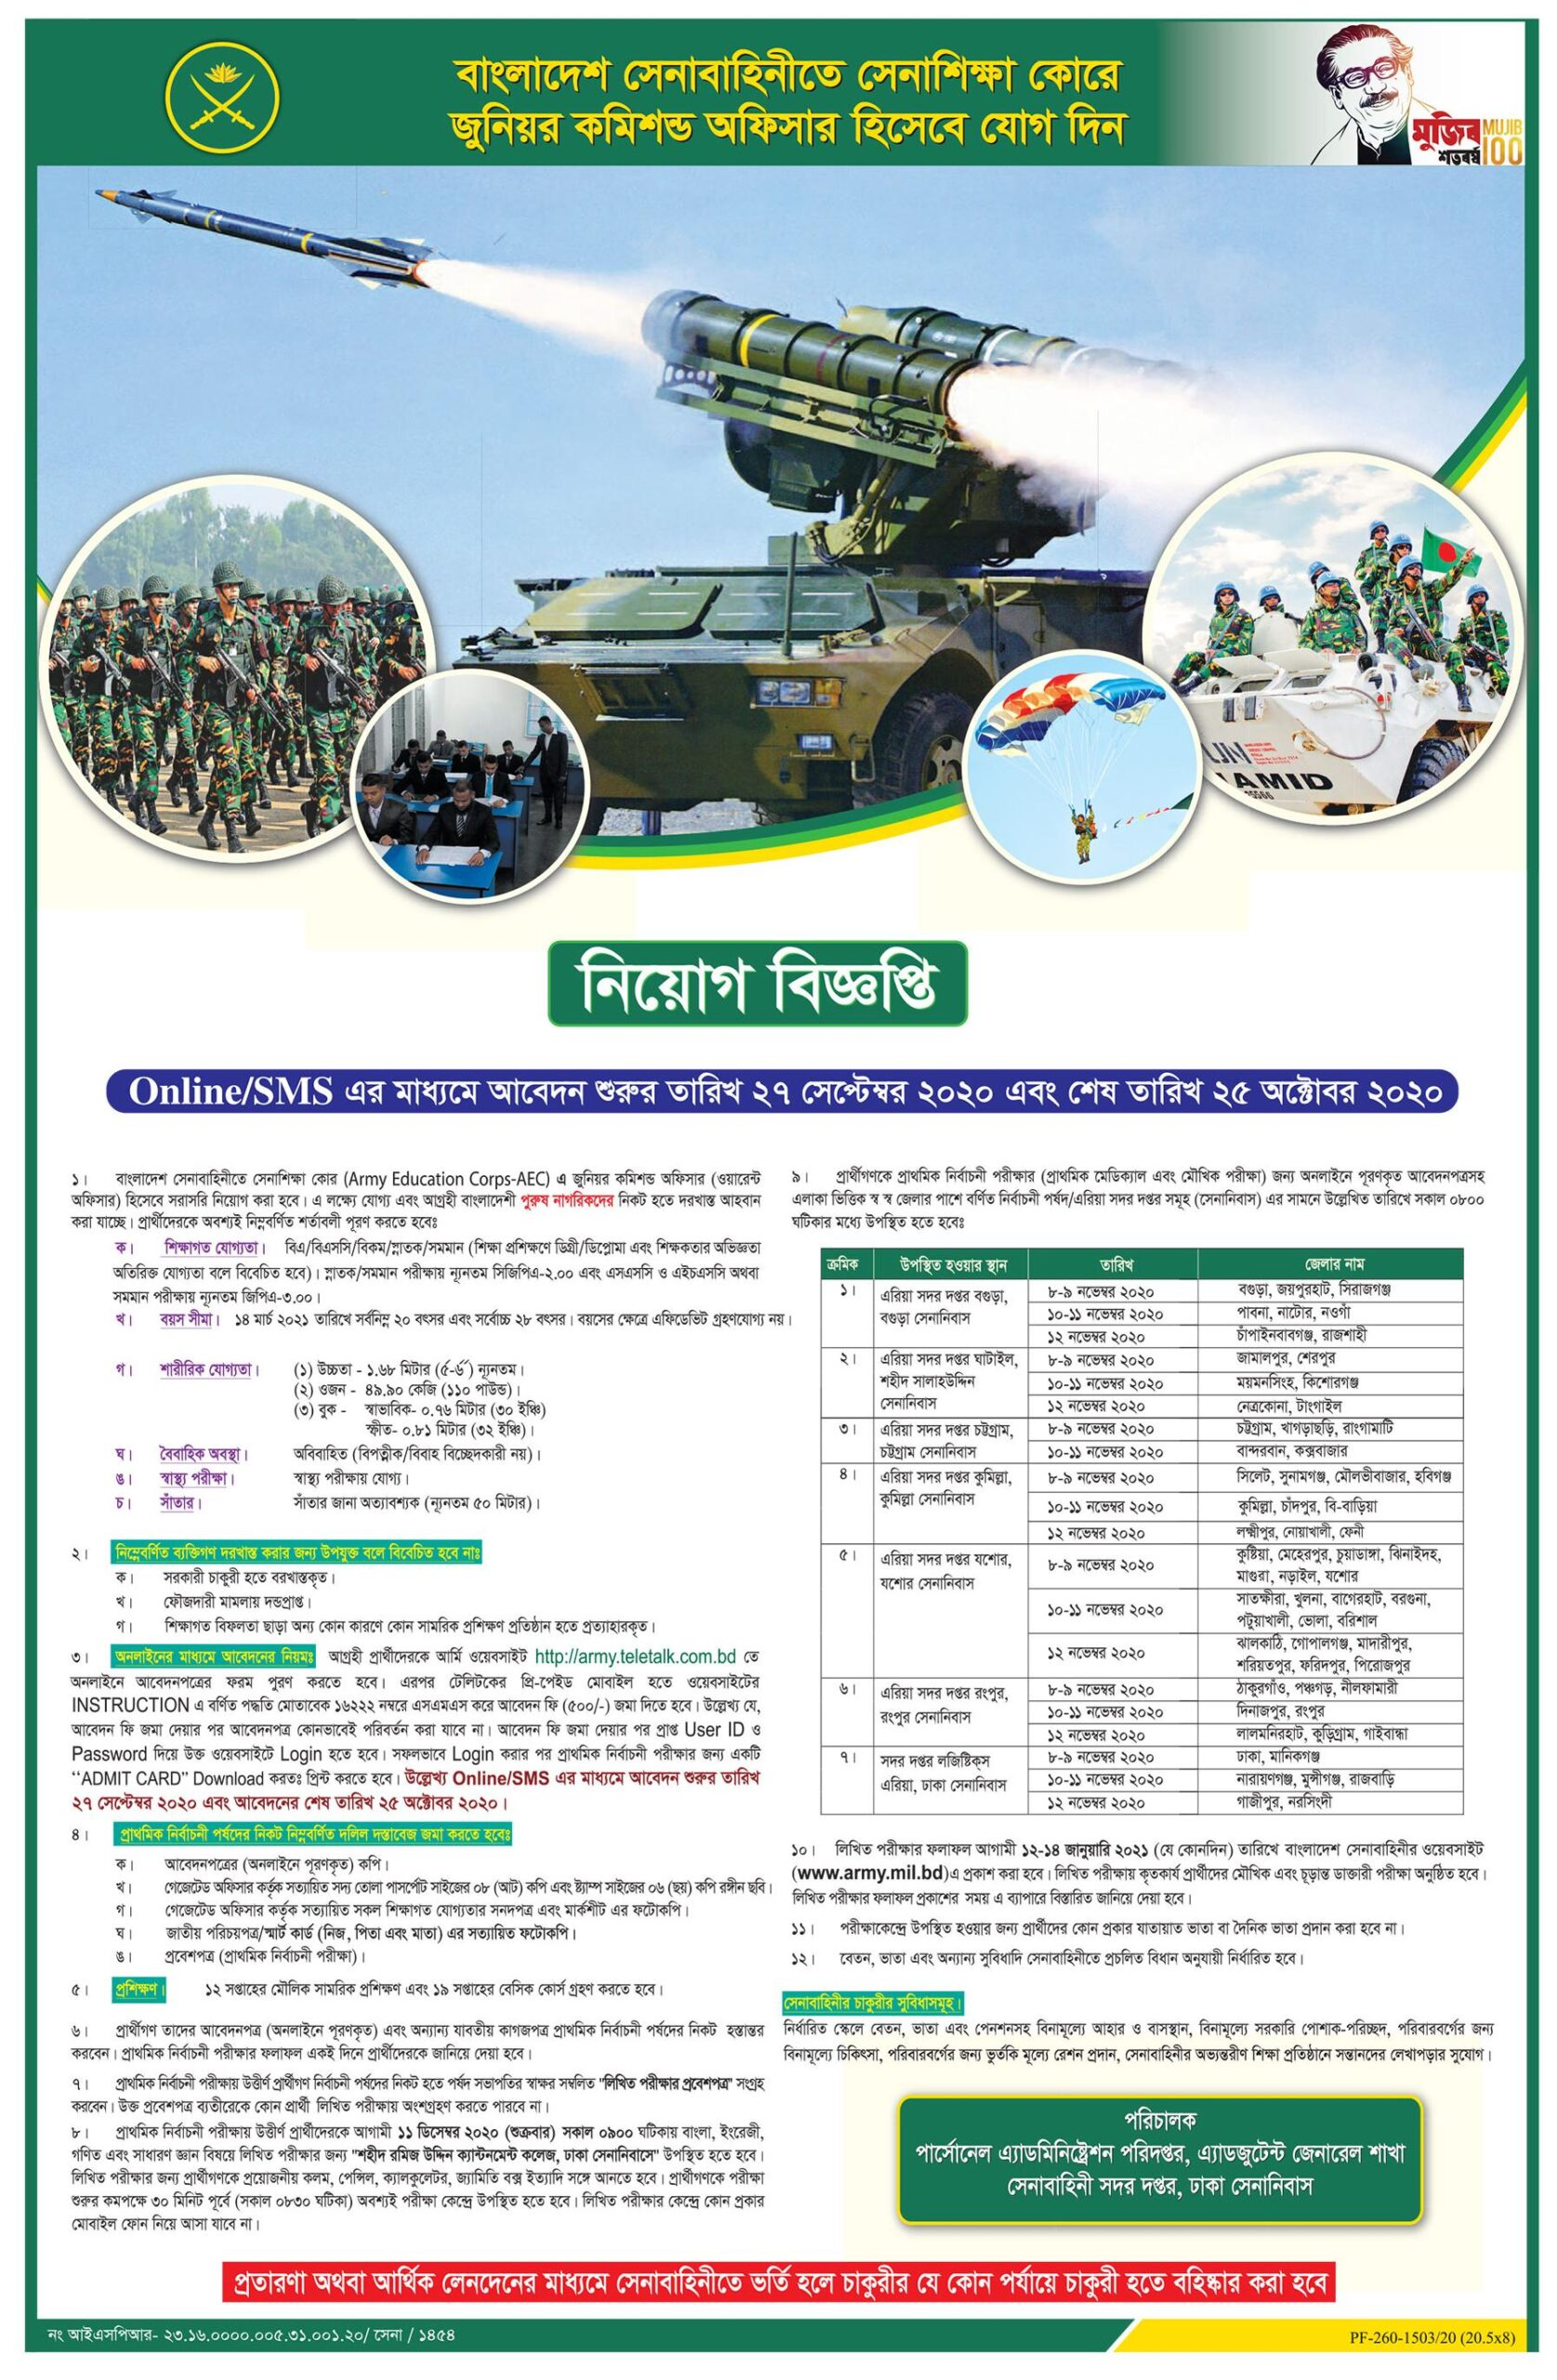 Bangladesh Army new job circular-joinbangladesharmy.army.nil.bd